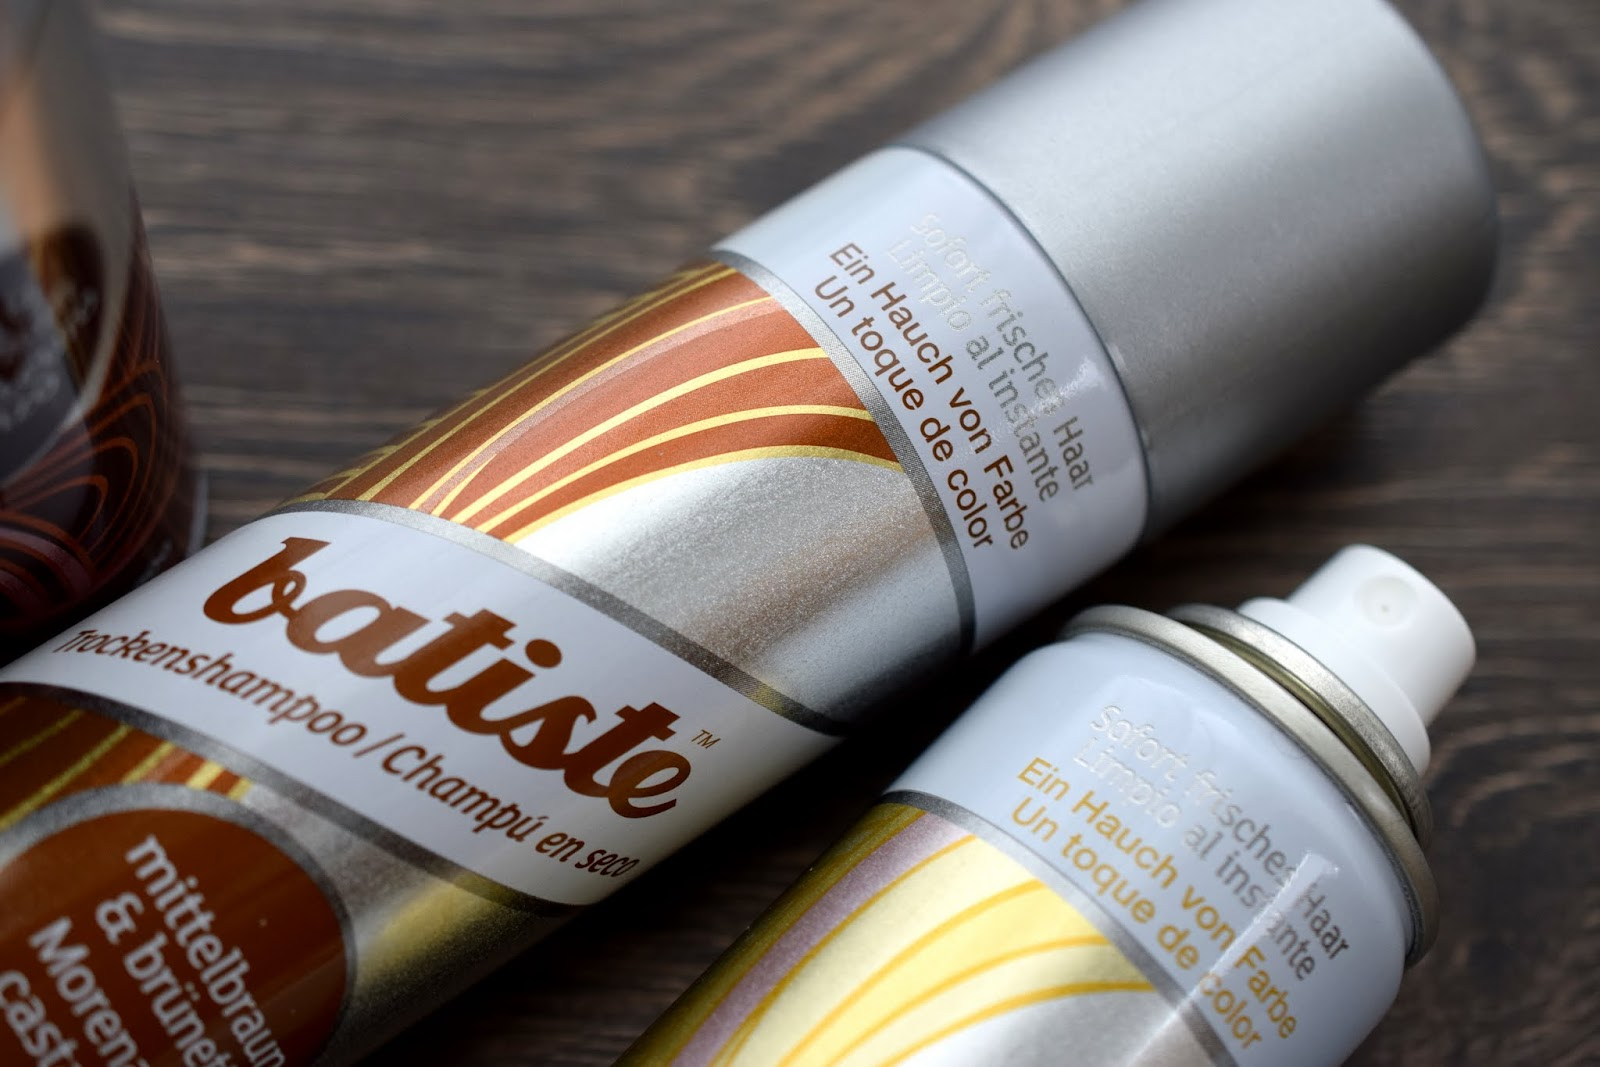 Batiste Hint of Colour Dry Shampoo